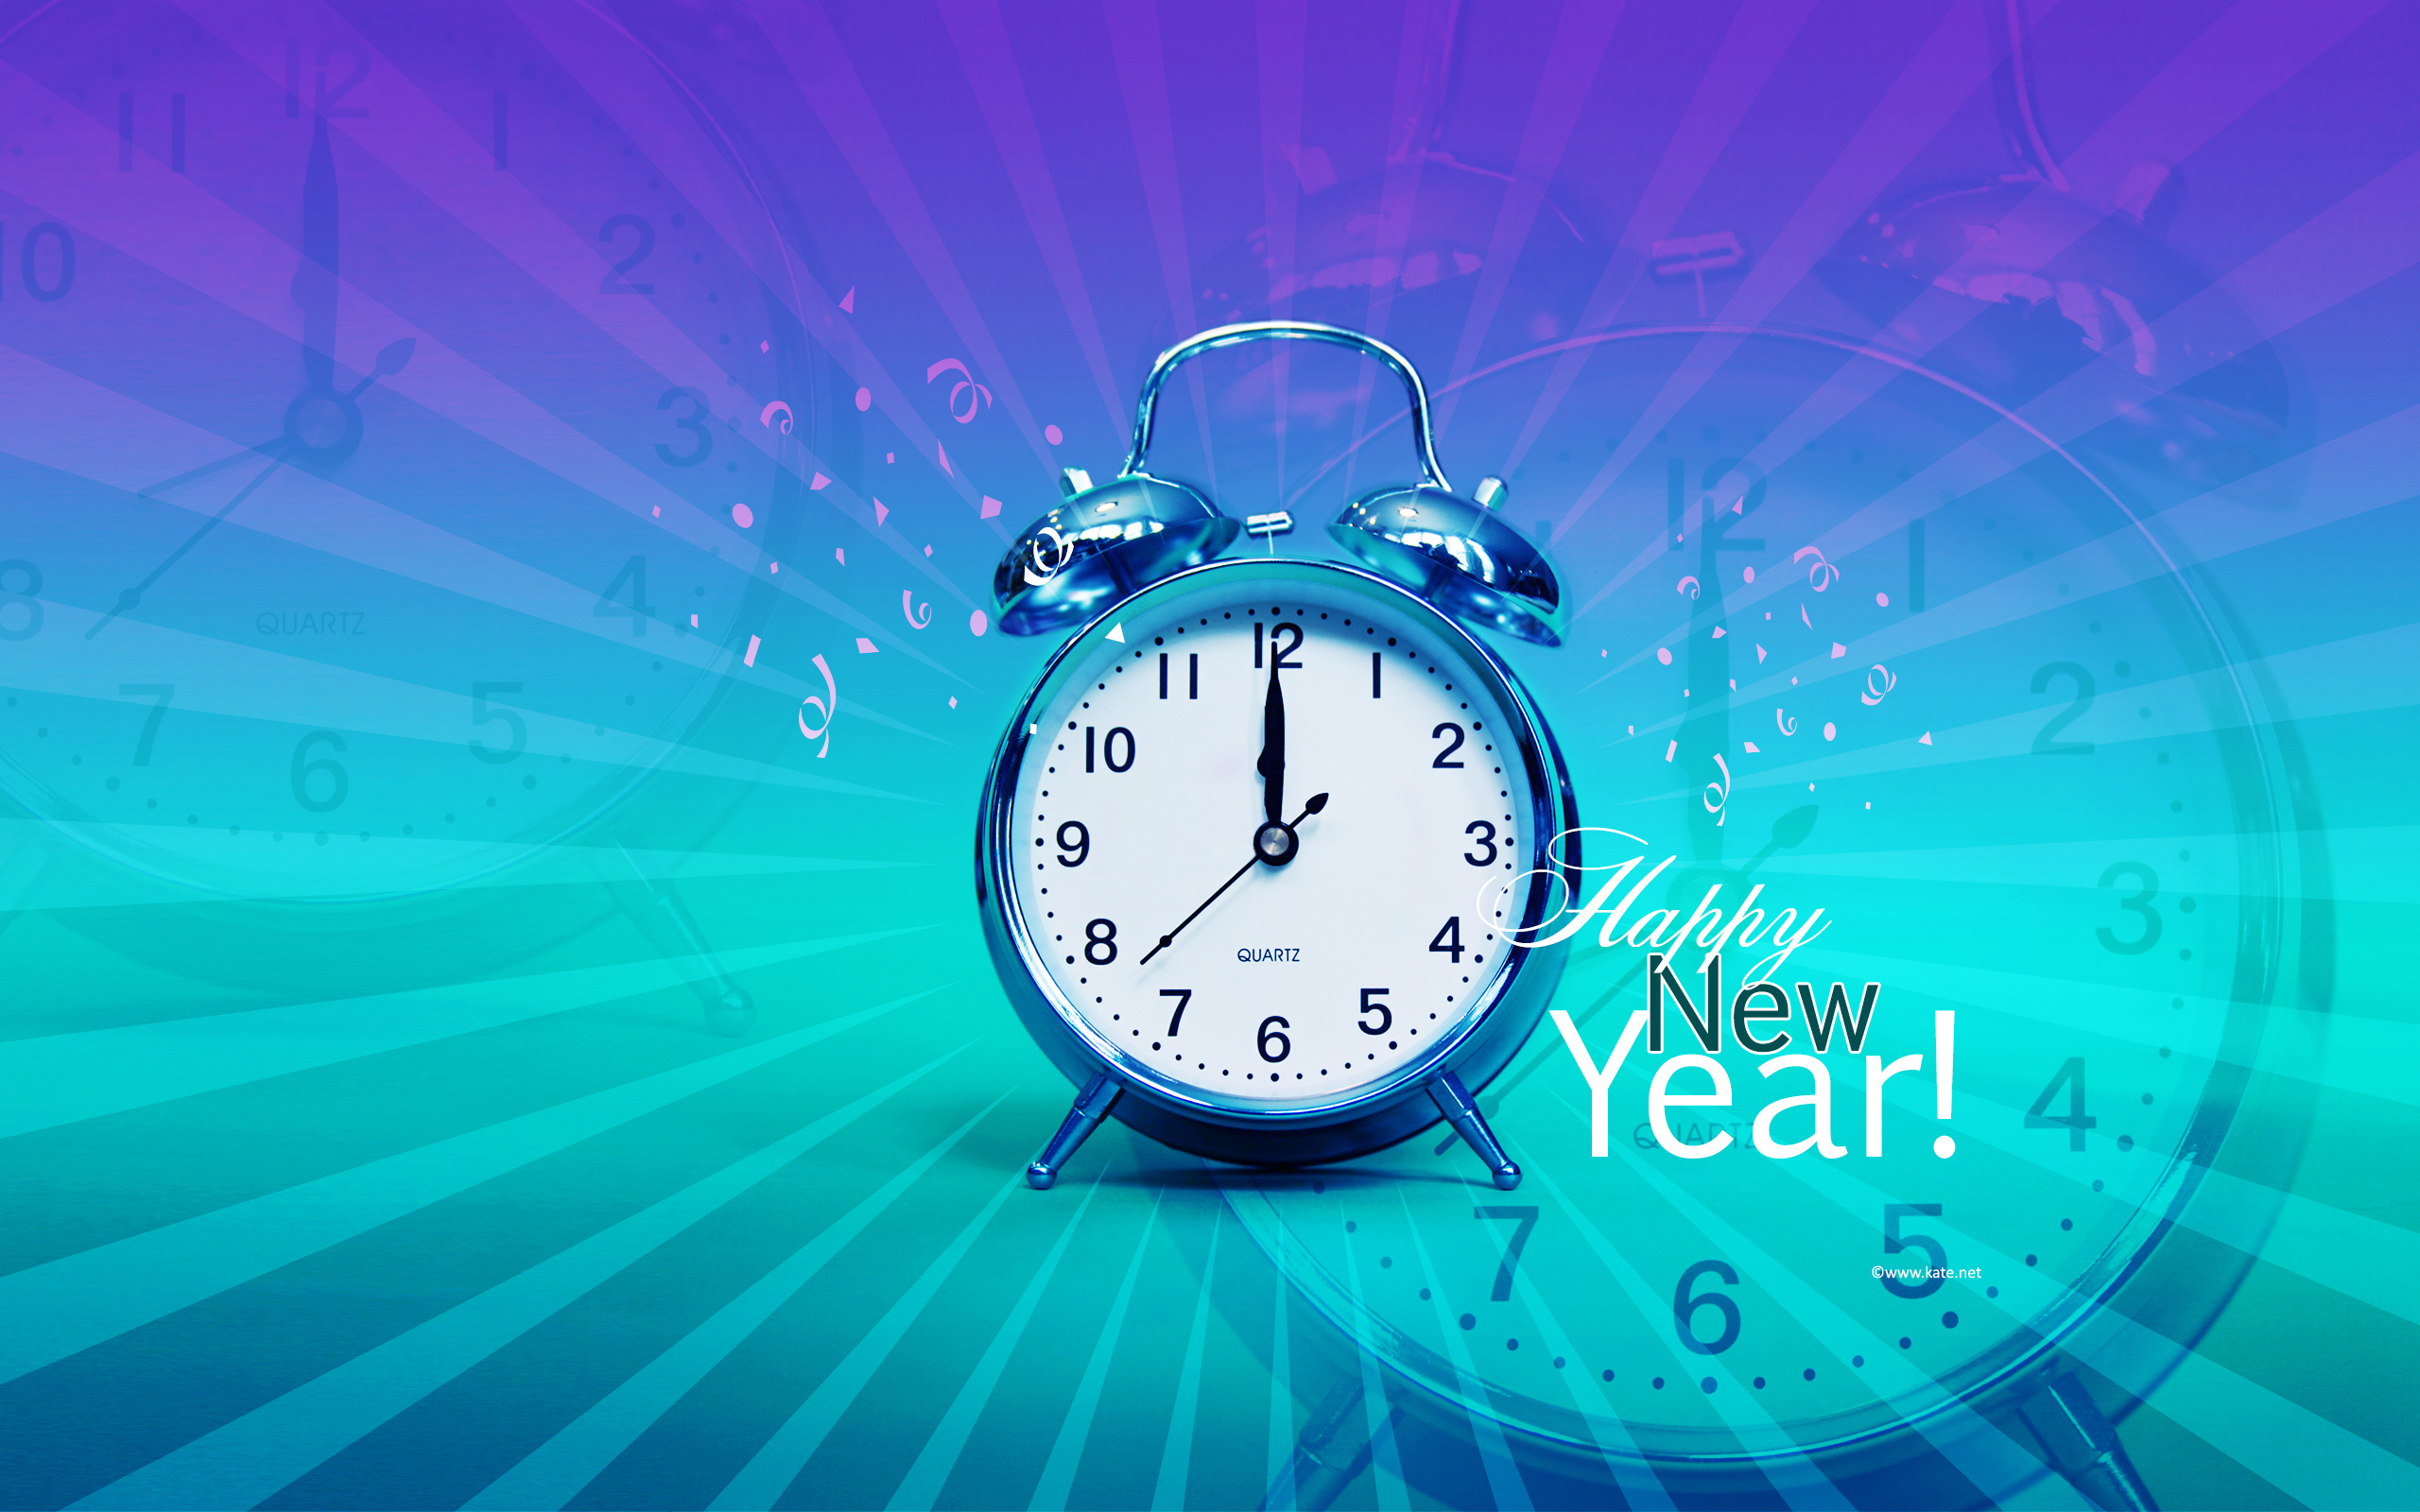 new year wallpapers 2016 new years backgrounds from katenet